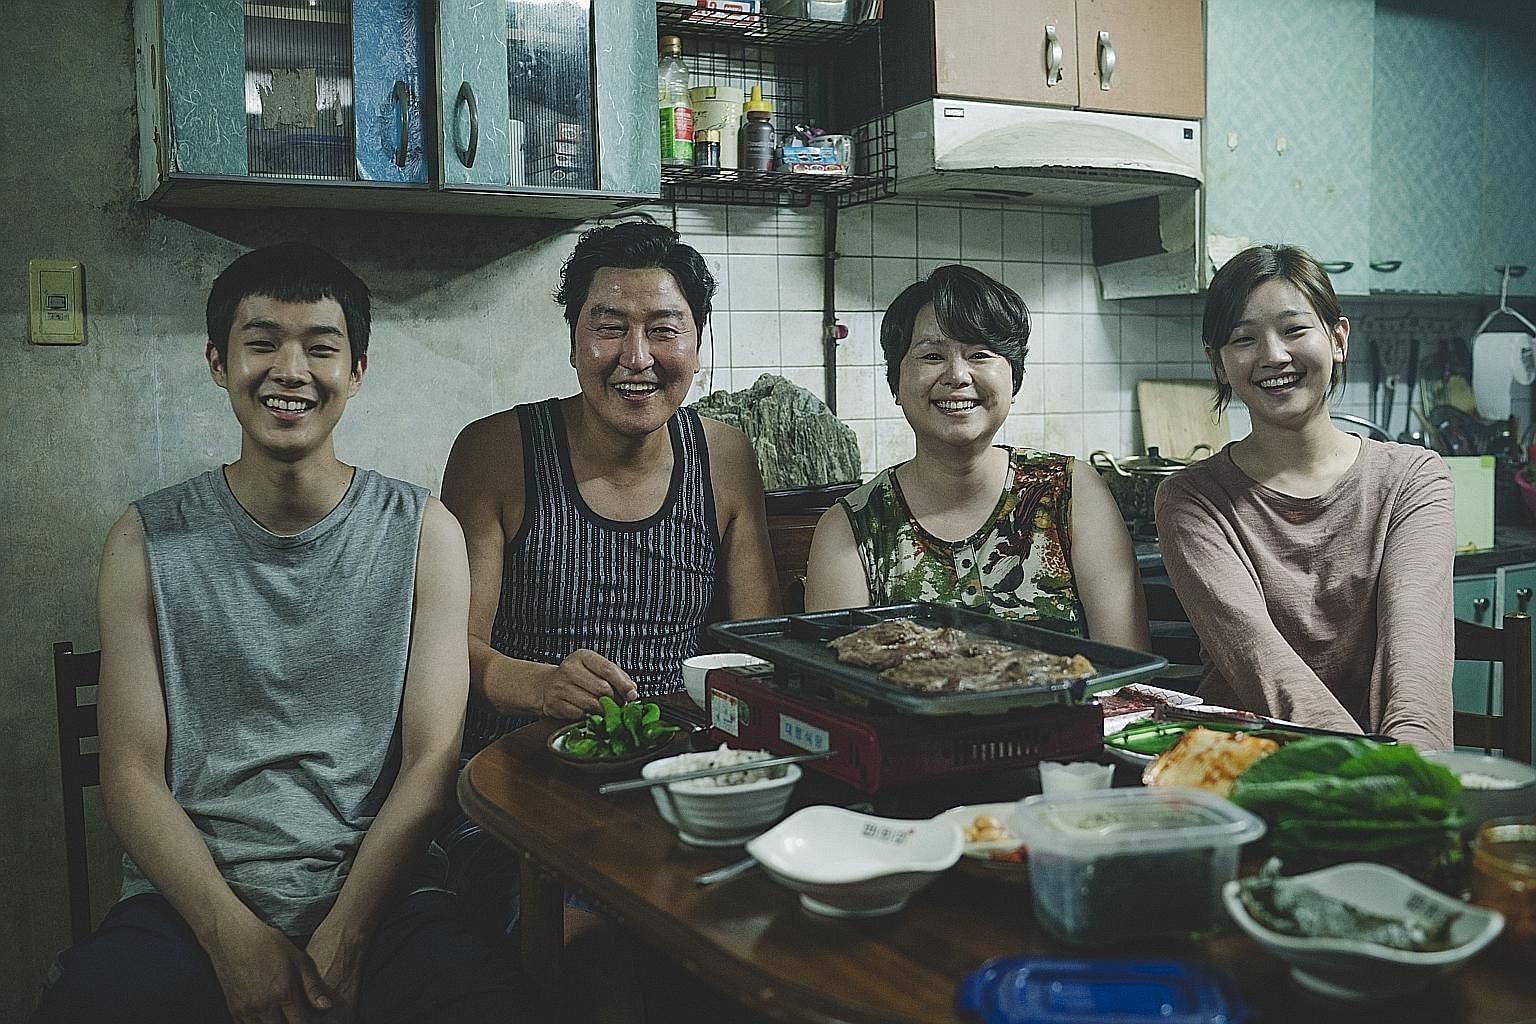 Parasite, starring (from left) Choi Woo-sik, Song Kang-ho, Jang Hye-jin and Park So-dam, is in the Oscars race with six nominations, including Best Picture. Things are looking good for World War I drama 1917, which picked up the Producers Guild Award